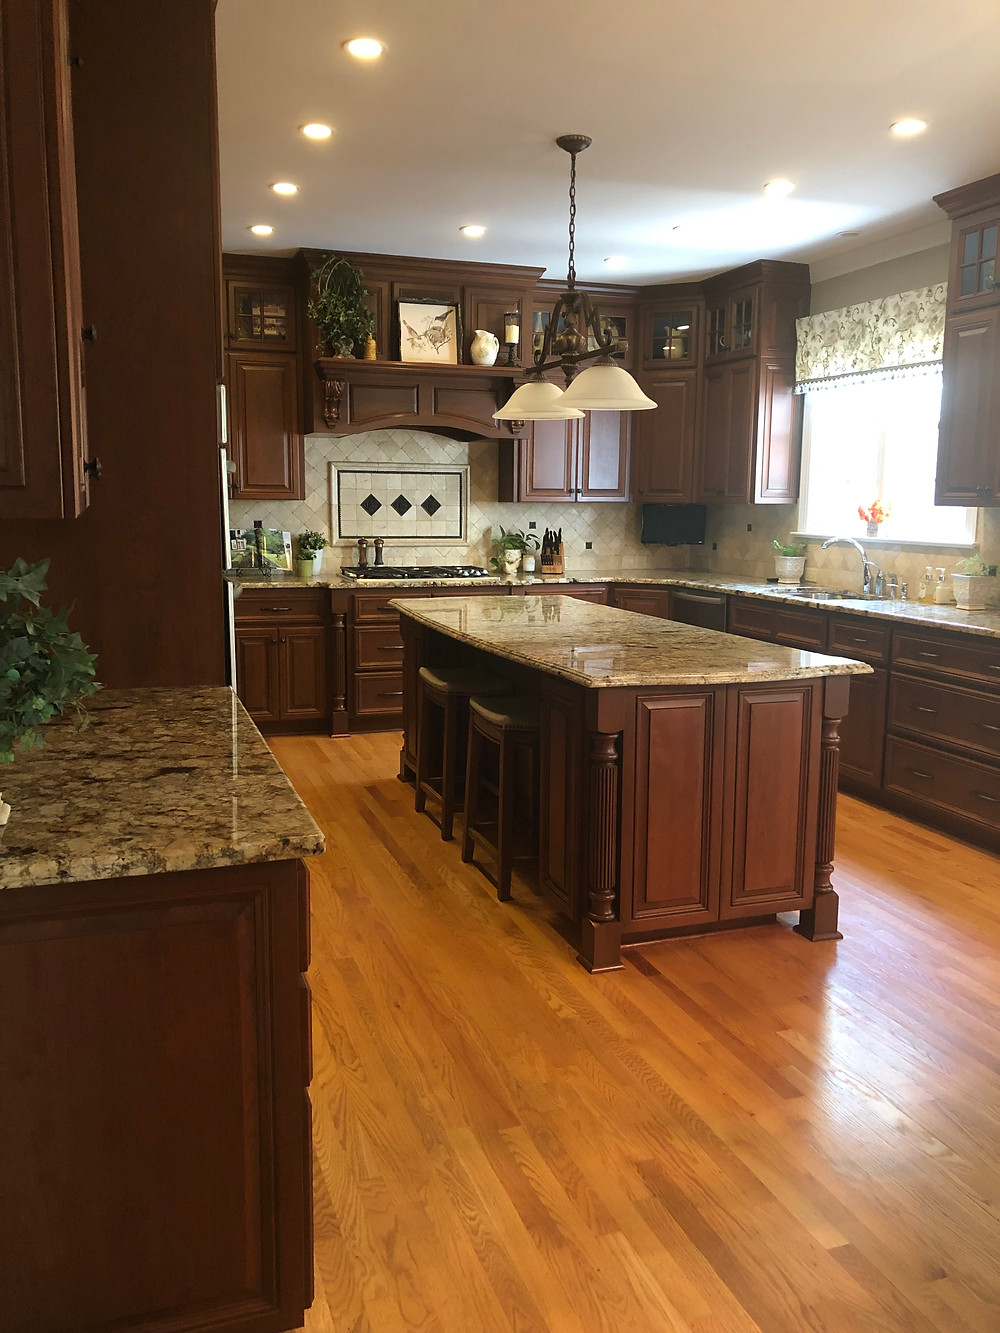 Kitchen with cherry wood cabinets